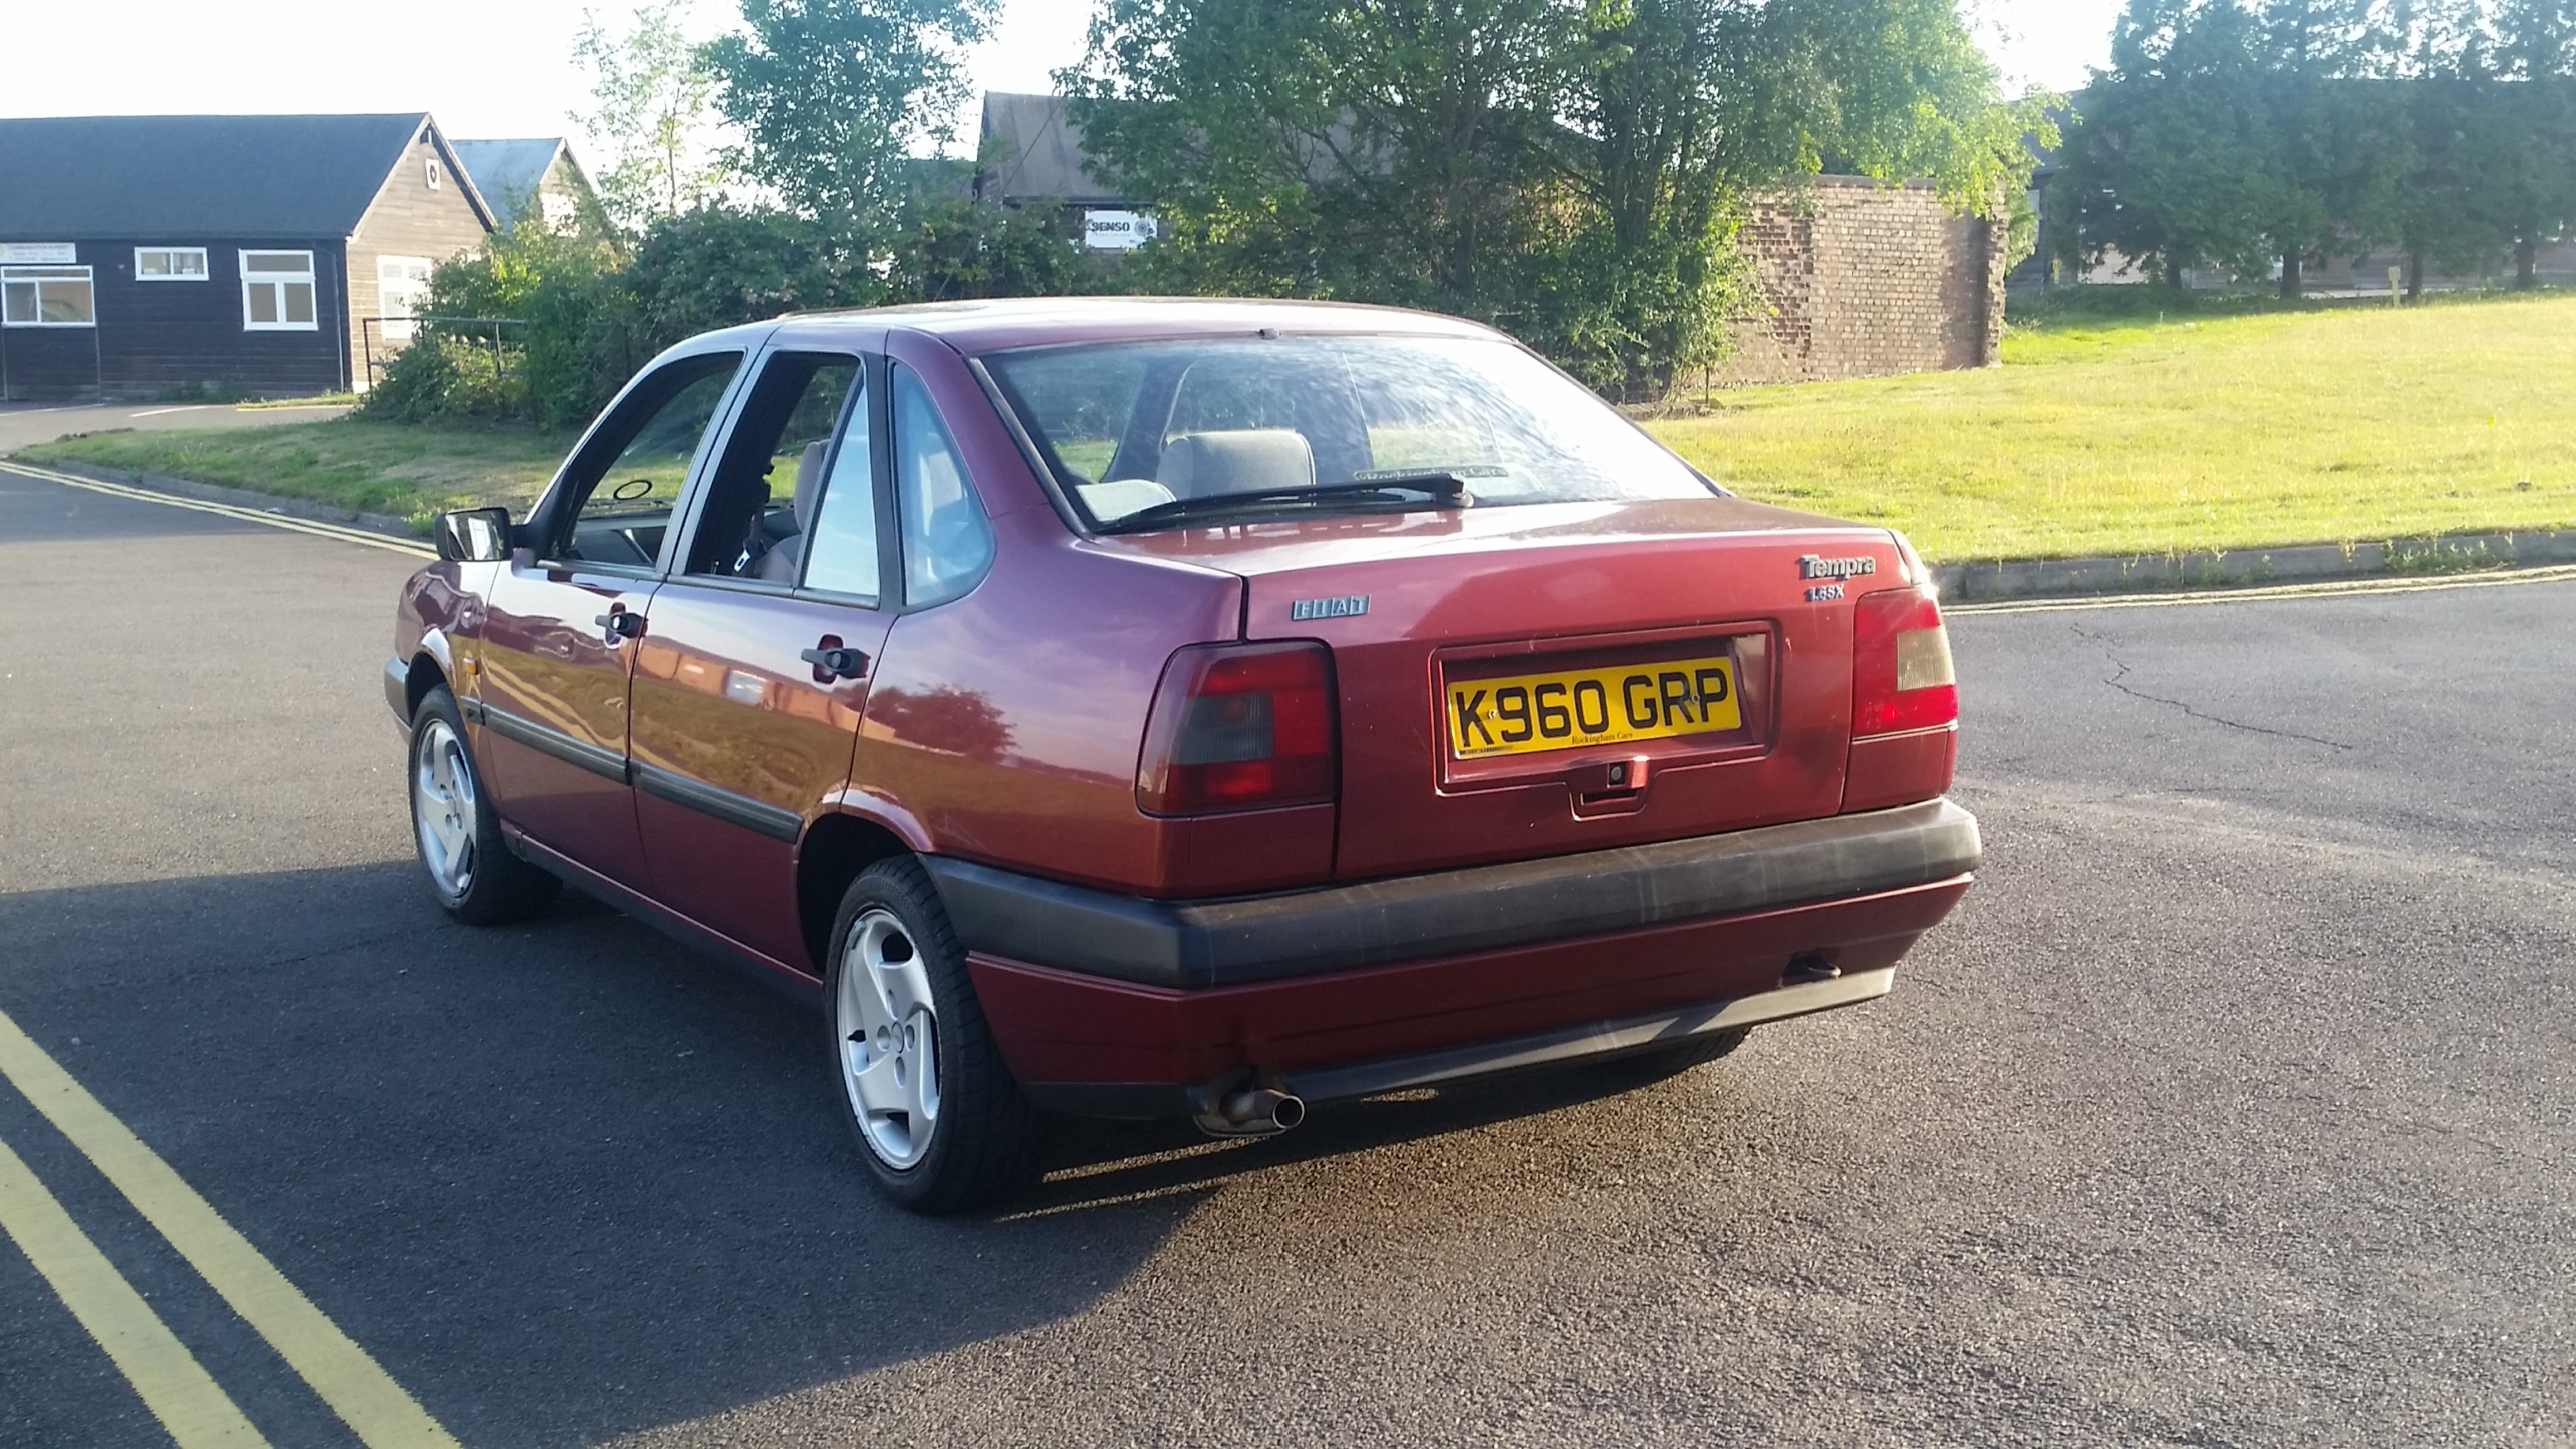 Fiat Tempra, Stuart Bird, Fiat Tipo, Fiat, Tempra, saloon car, saloon, car, cars, motoring, automotive, classic car, retro car, car story, car review, ebay, ebay motors, autotrader, car sales, bargain car,